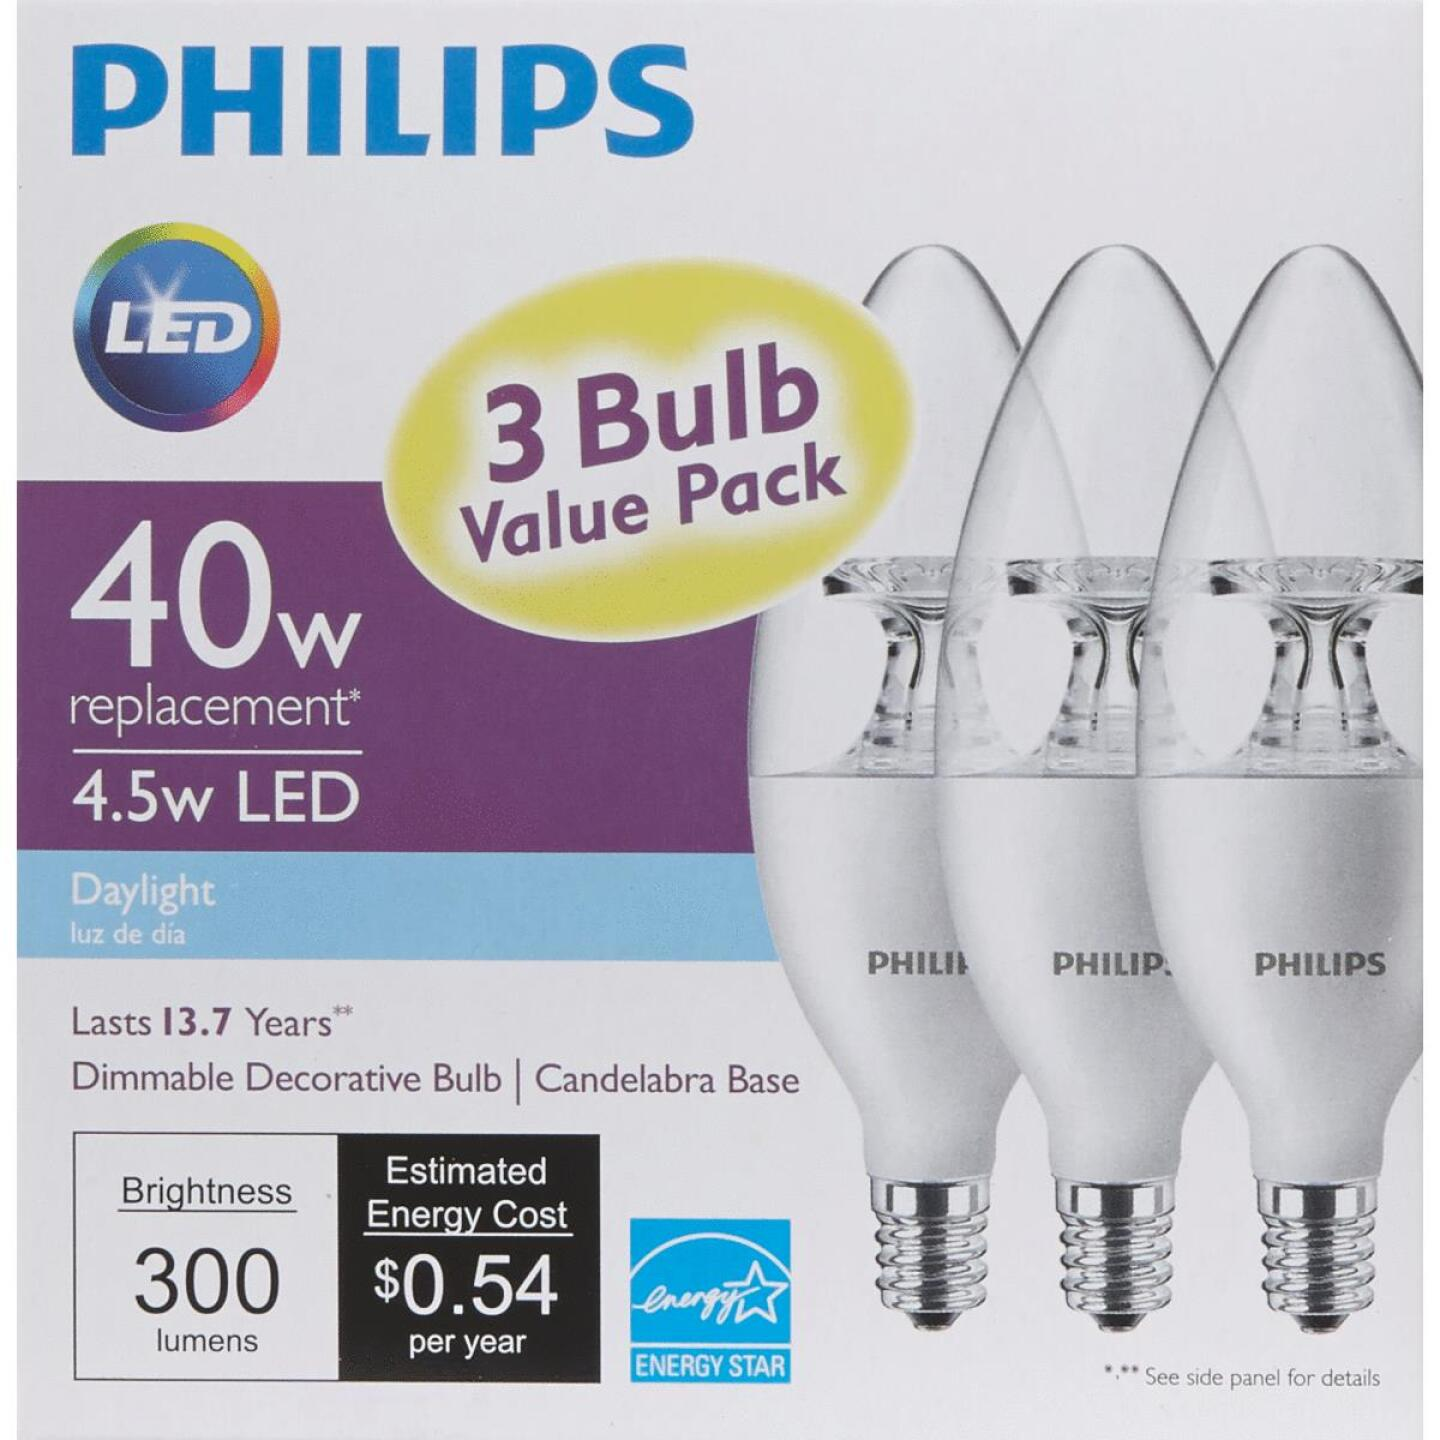 Philips 40W Equivalent Daylight B11 Candelabra Dimmable LED Decorative Light Bulb (3-Pack) Image 5